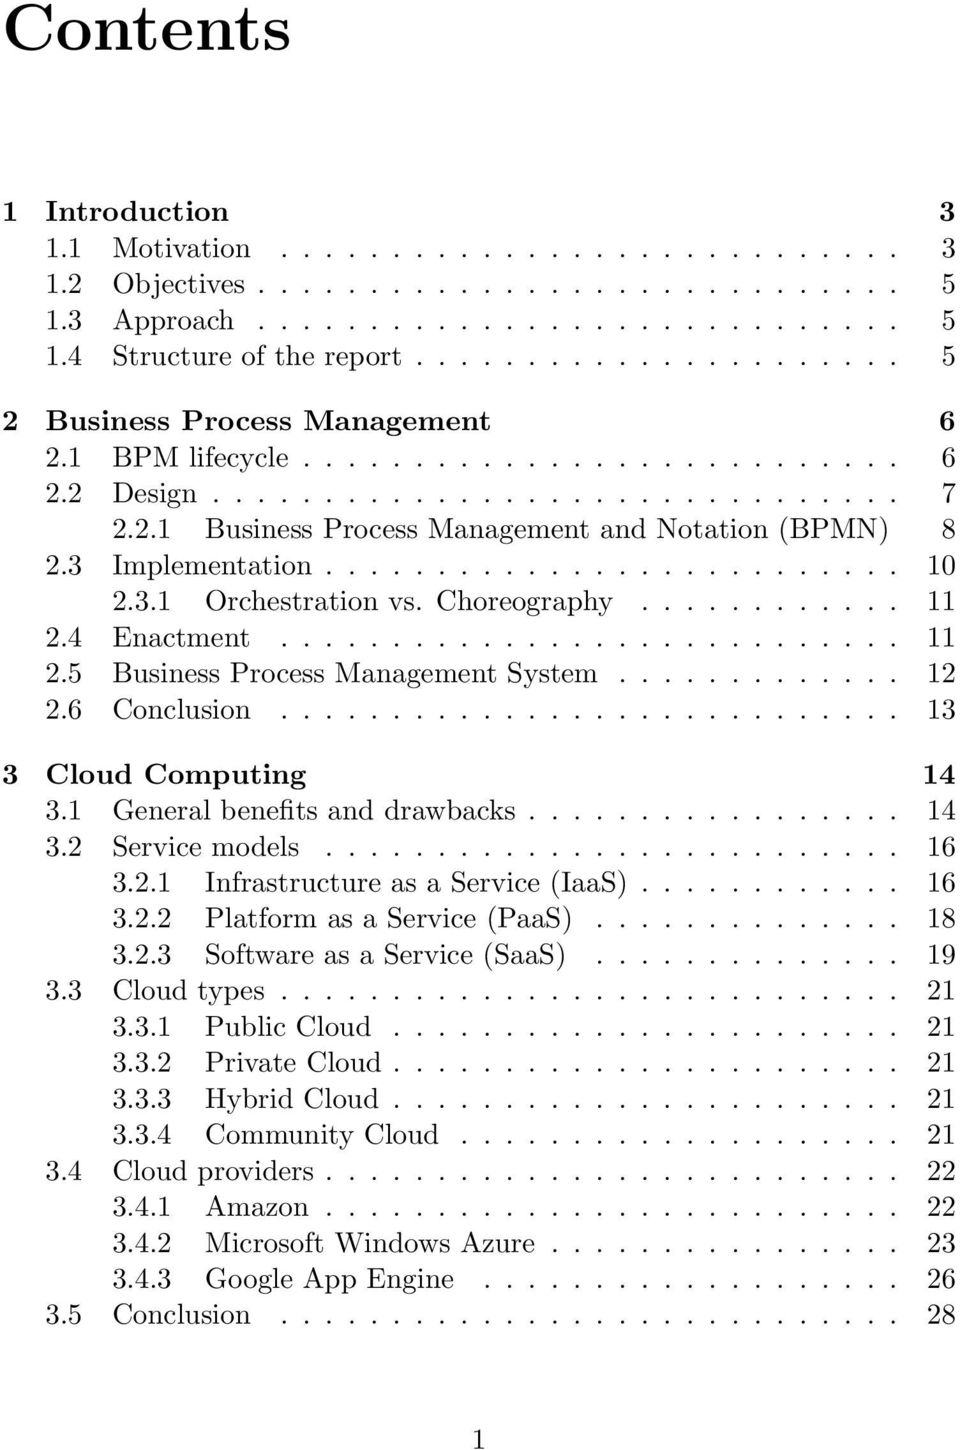 3 Implementation.......................... 10 2.3.1 Orchestration vs. Choreography............ 11 2.4 Enactment............................ 11 2.5 Business Process Management System............. 12 2.